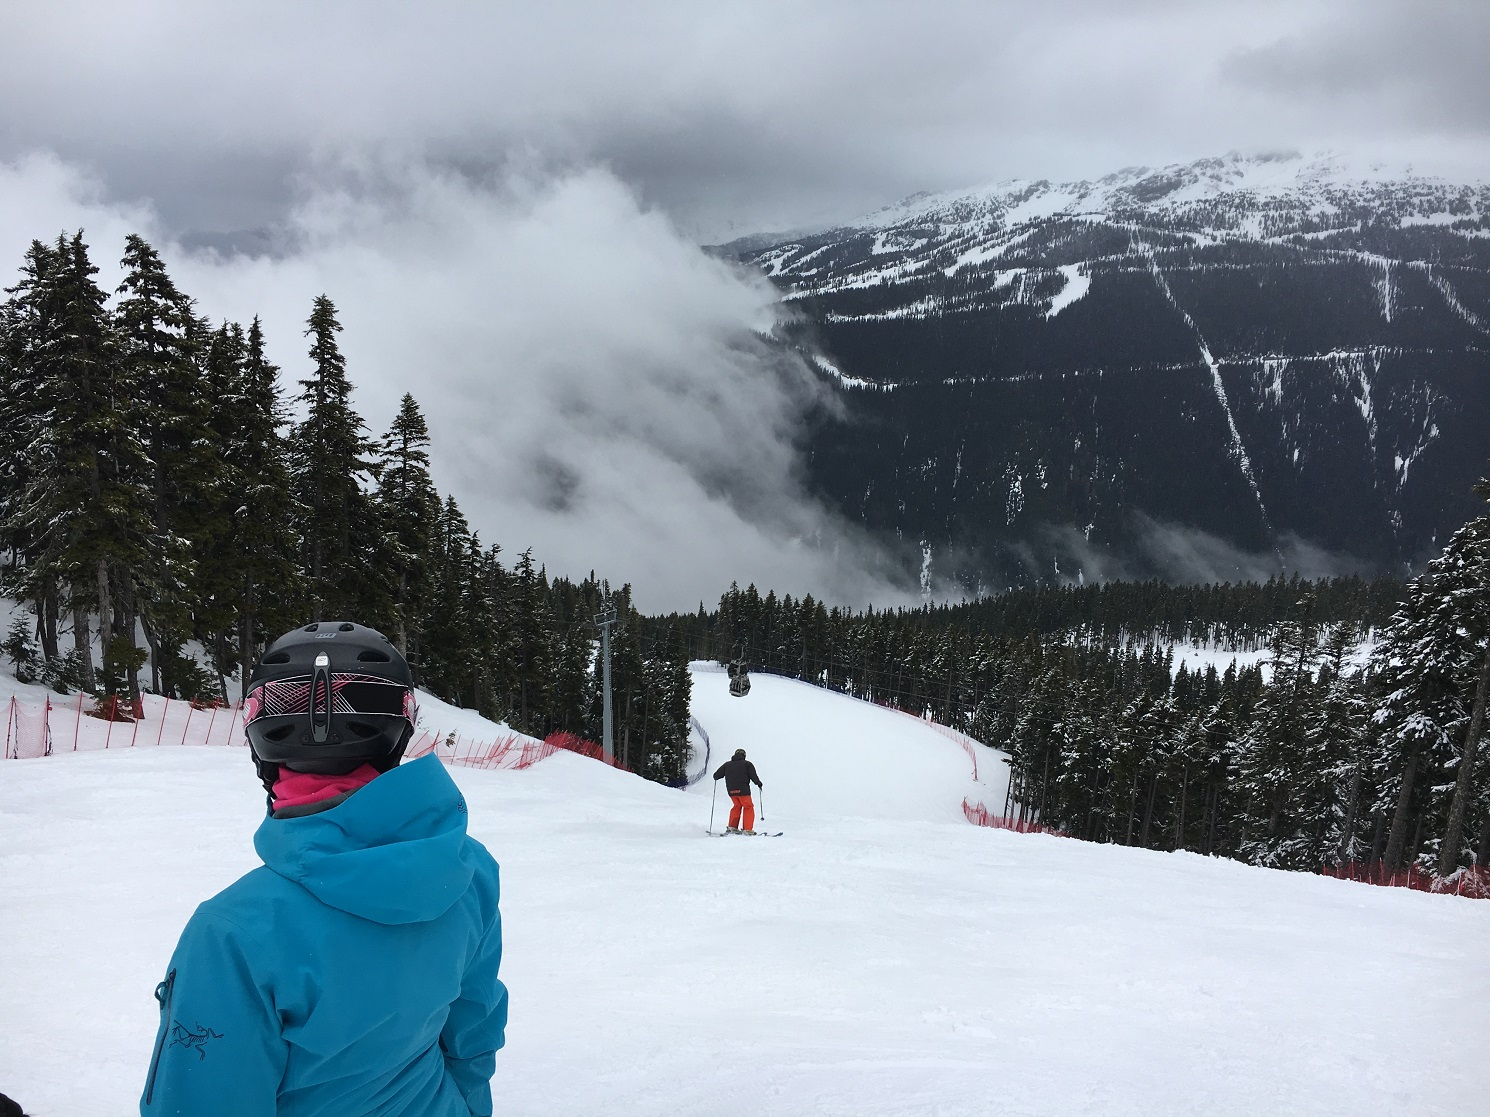 ski lesson group above clouds